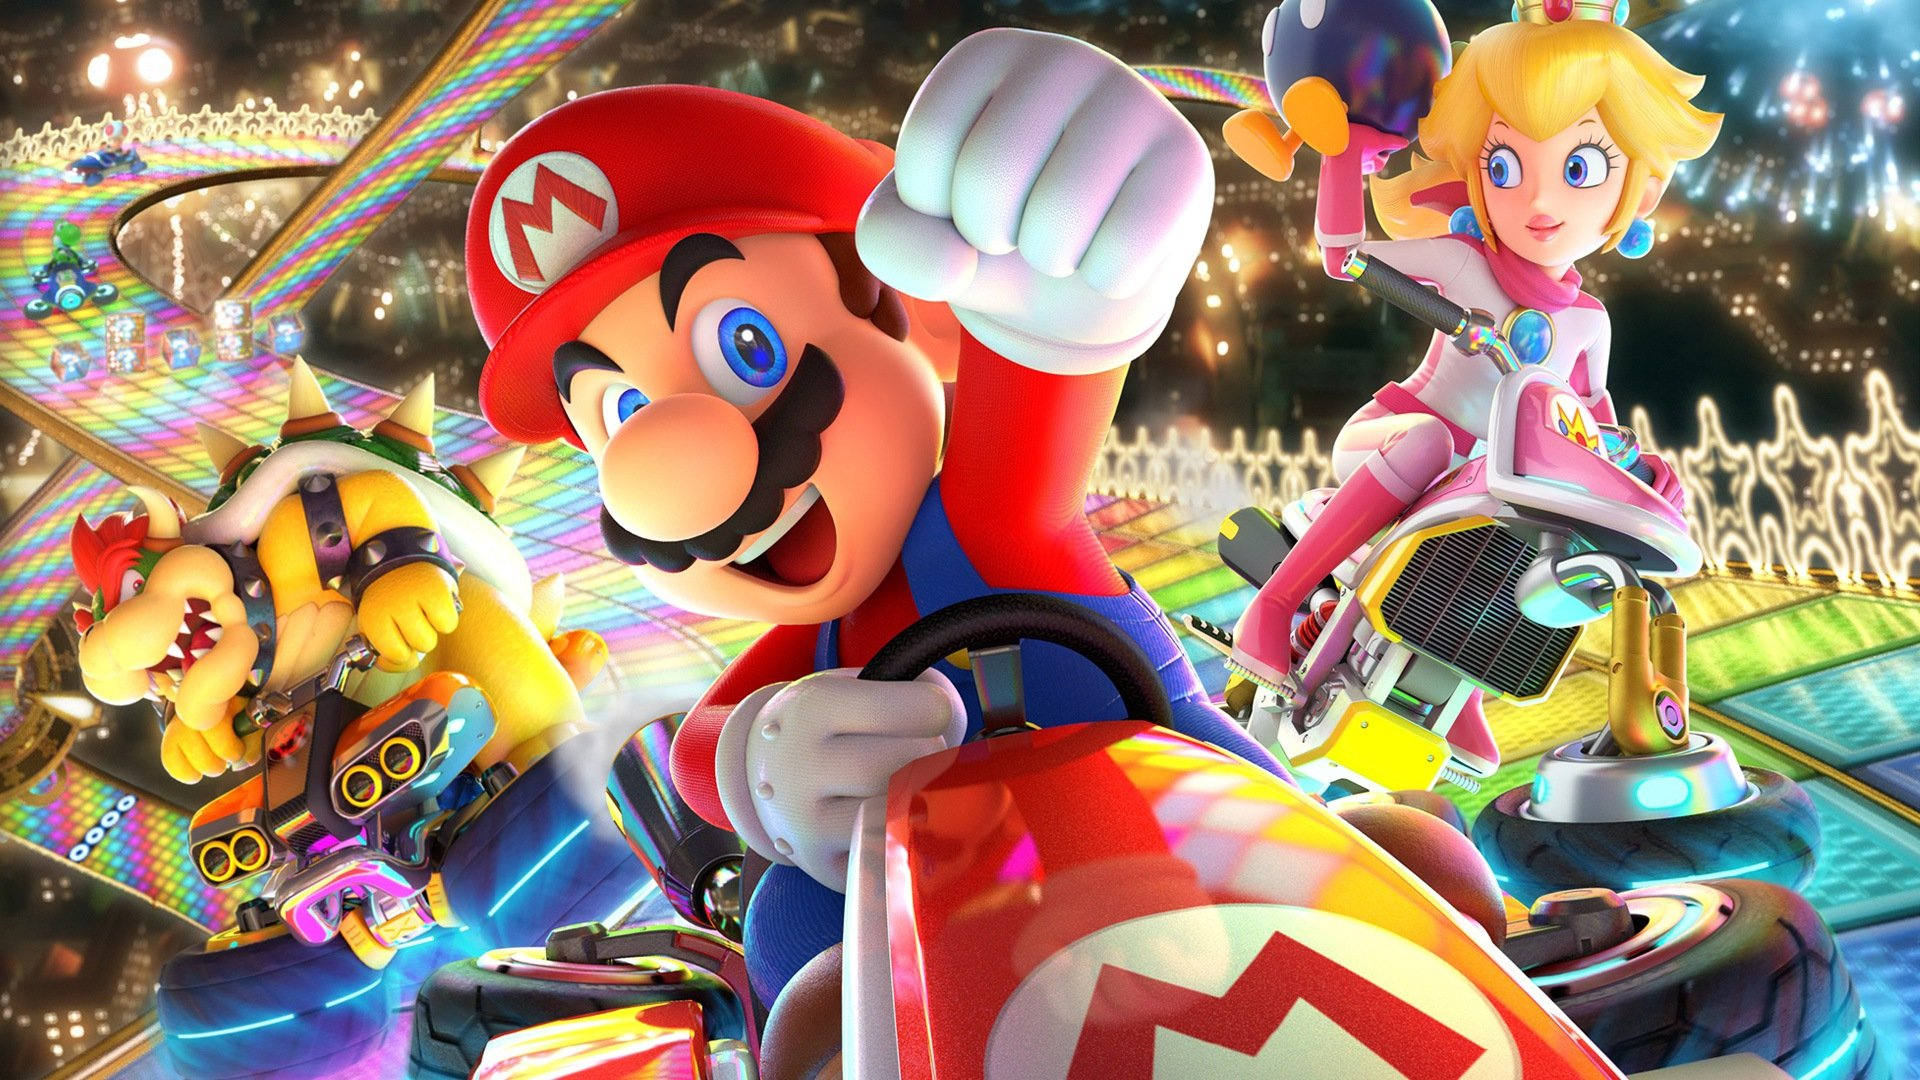 Mario Kart 8 Deluxe bursts on scene, surging Switch sales prior to big holiday screenshot